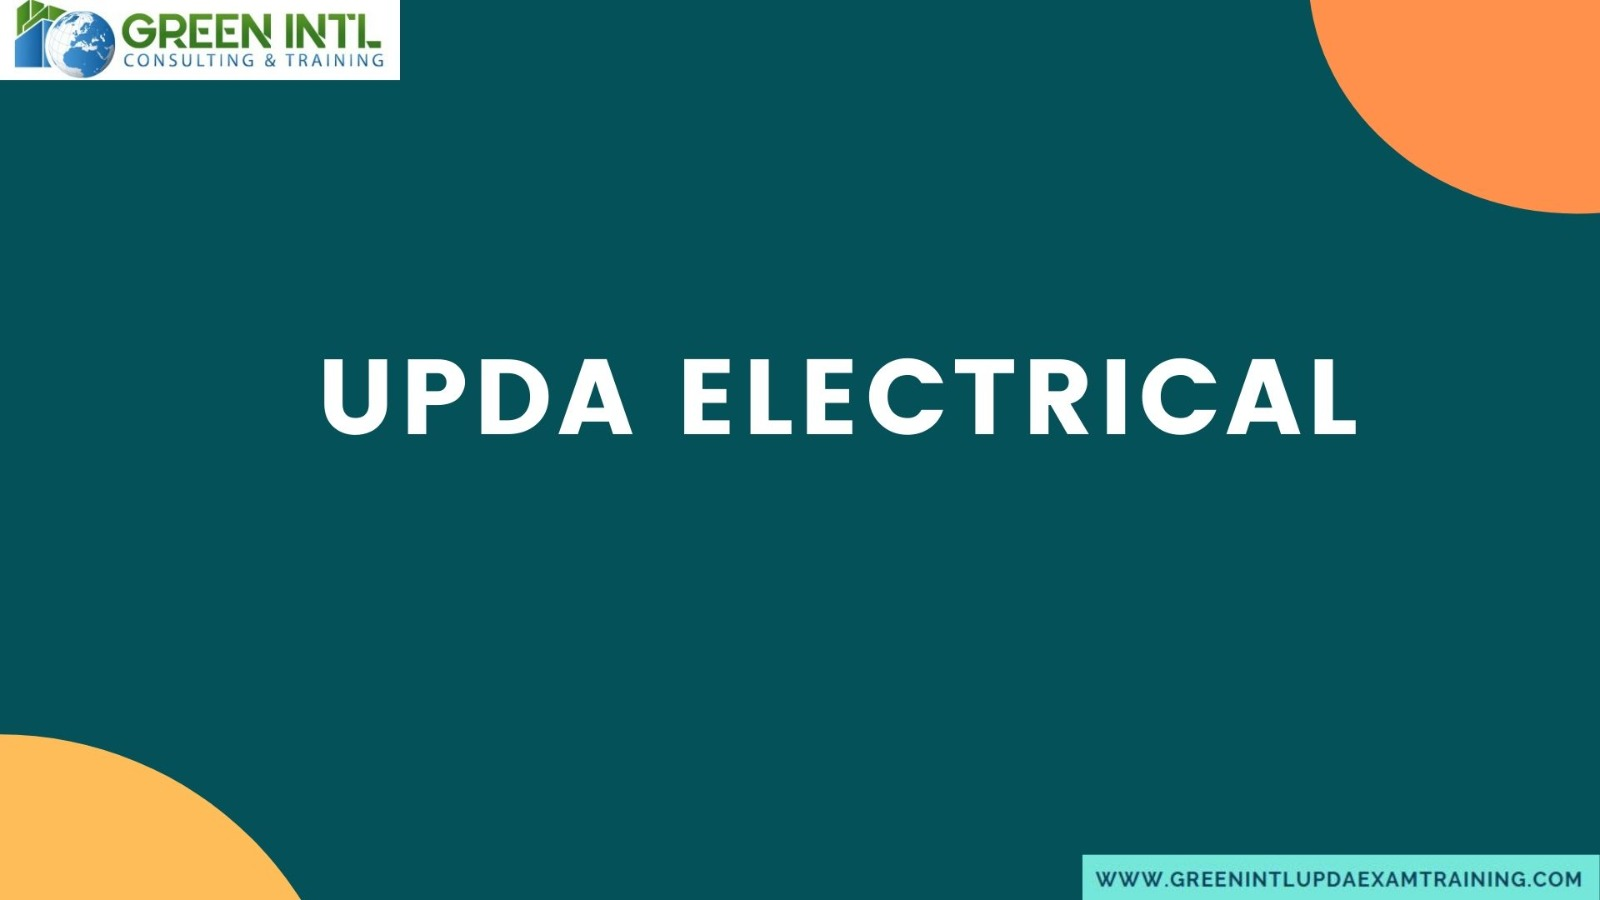 upda electrical previous question papers qatar mmup exam for electrical engineers